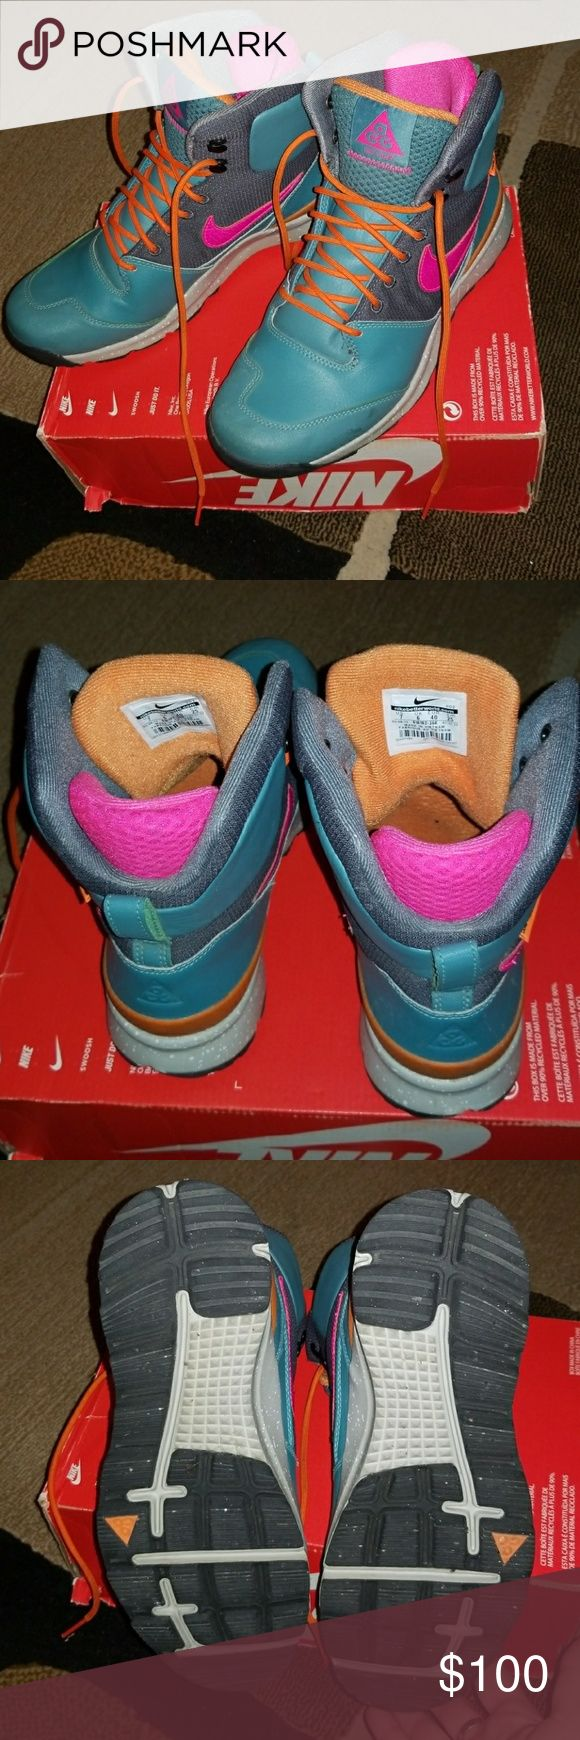 Nike ACG Watershield Winter Boots Size 7 Mens Nike ACG winter boots with water shield technology,  excellent condition. Only worn a couple of times. Hot pink and orange accents on tiffany turquoise with great speckled base. Would fit a women's 8 - 9, men's 7. Smoke and pet free home. Nike ACG Shoes Rain & Snow Boots